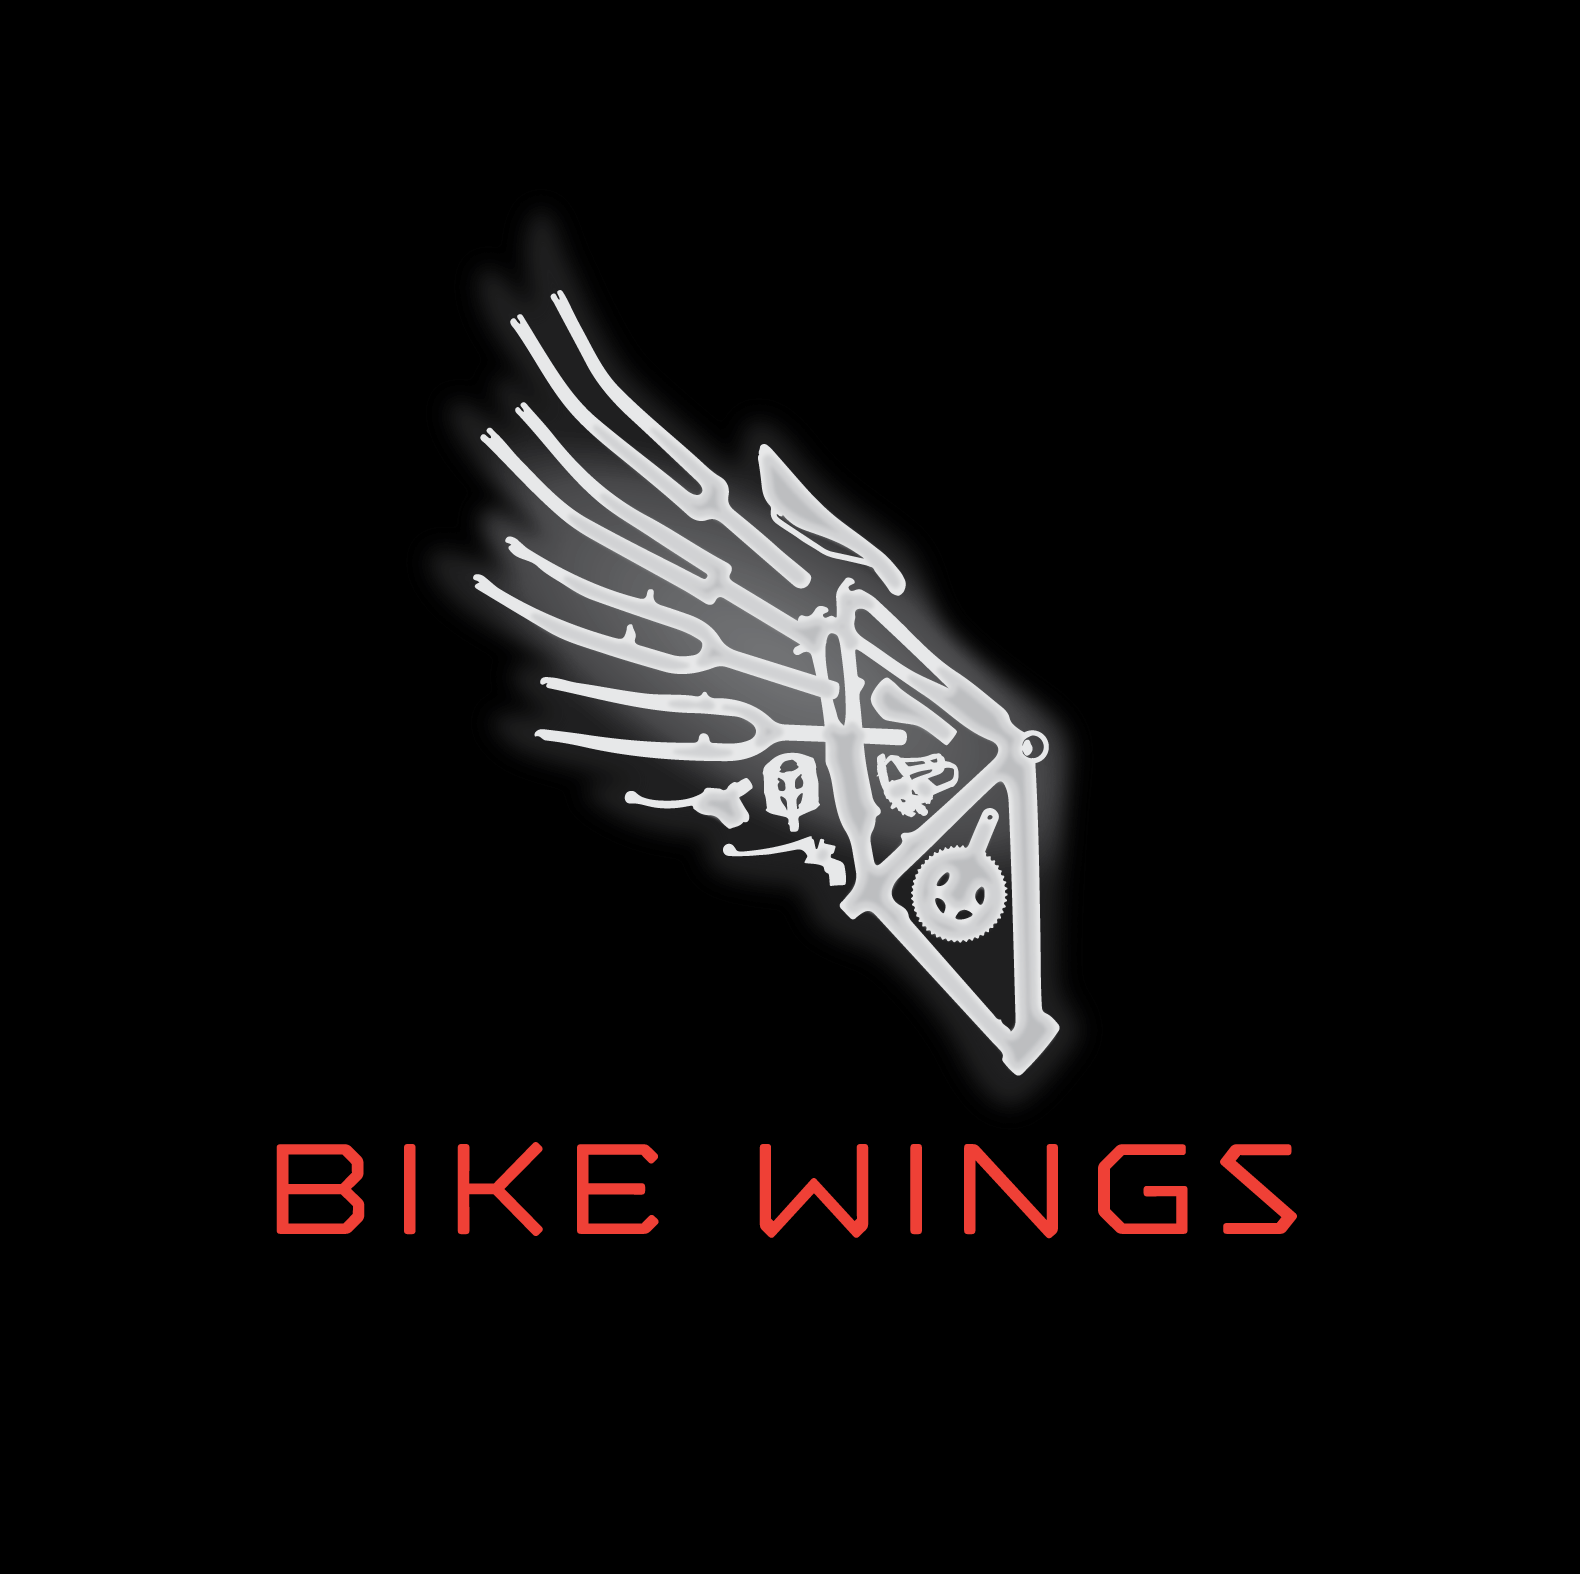 23 wings logo